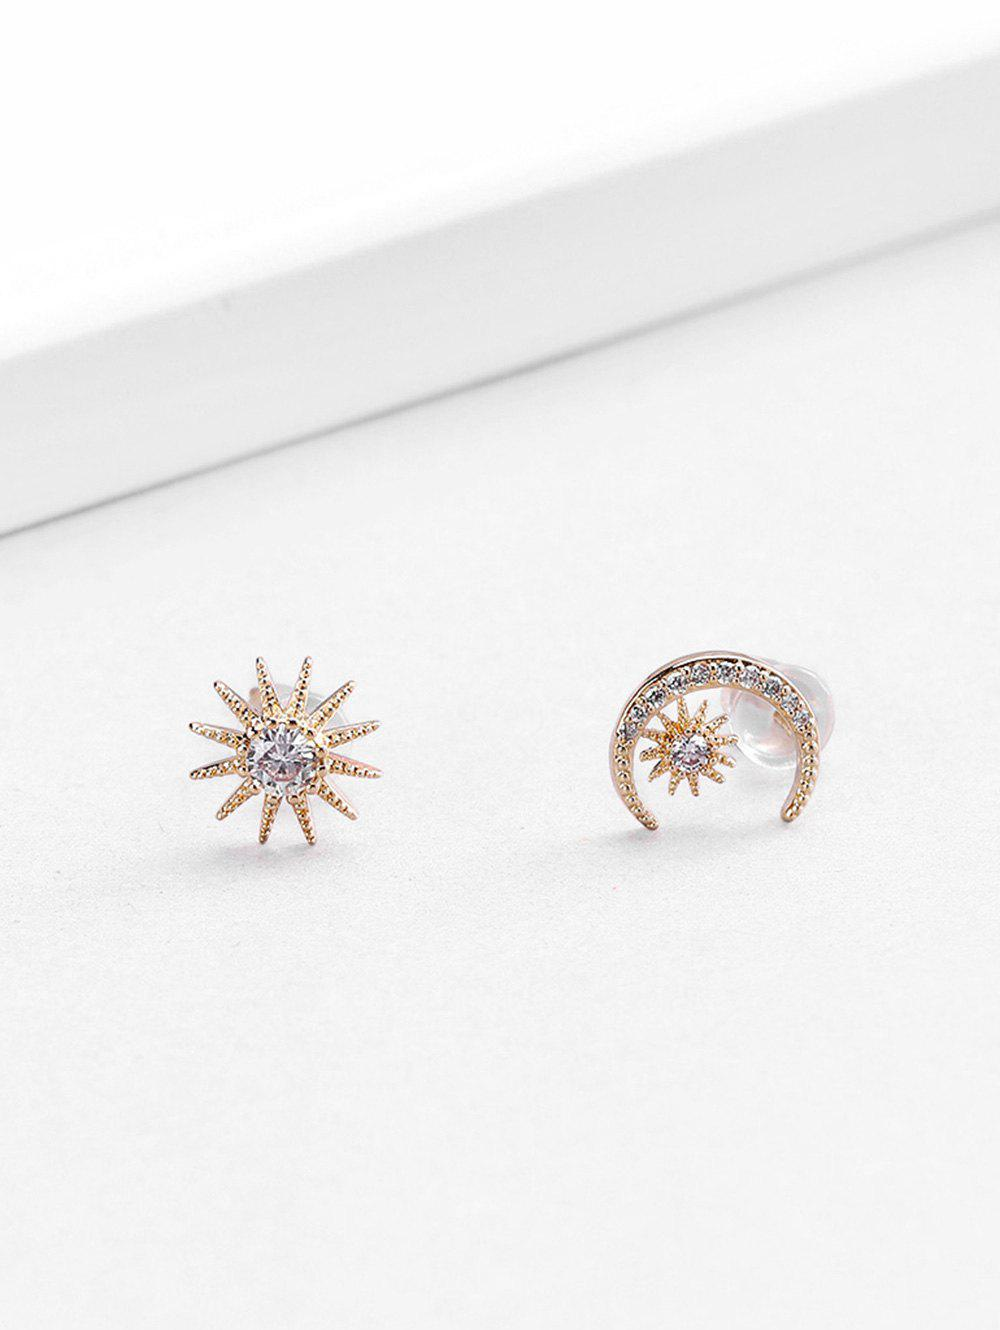 18K Gold Plated Zircon Embellished Moon Star Shape Stud Earrings - GOLDEN